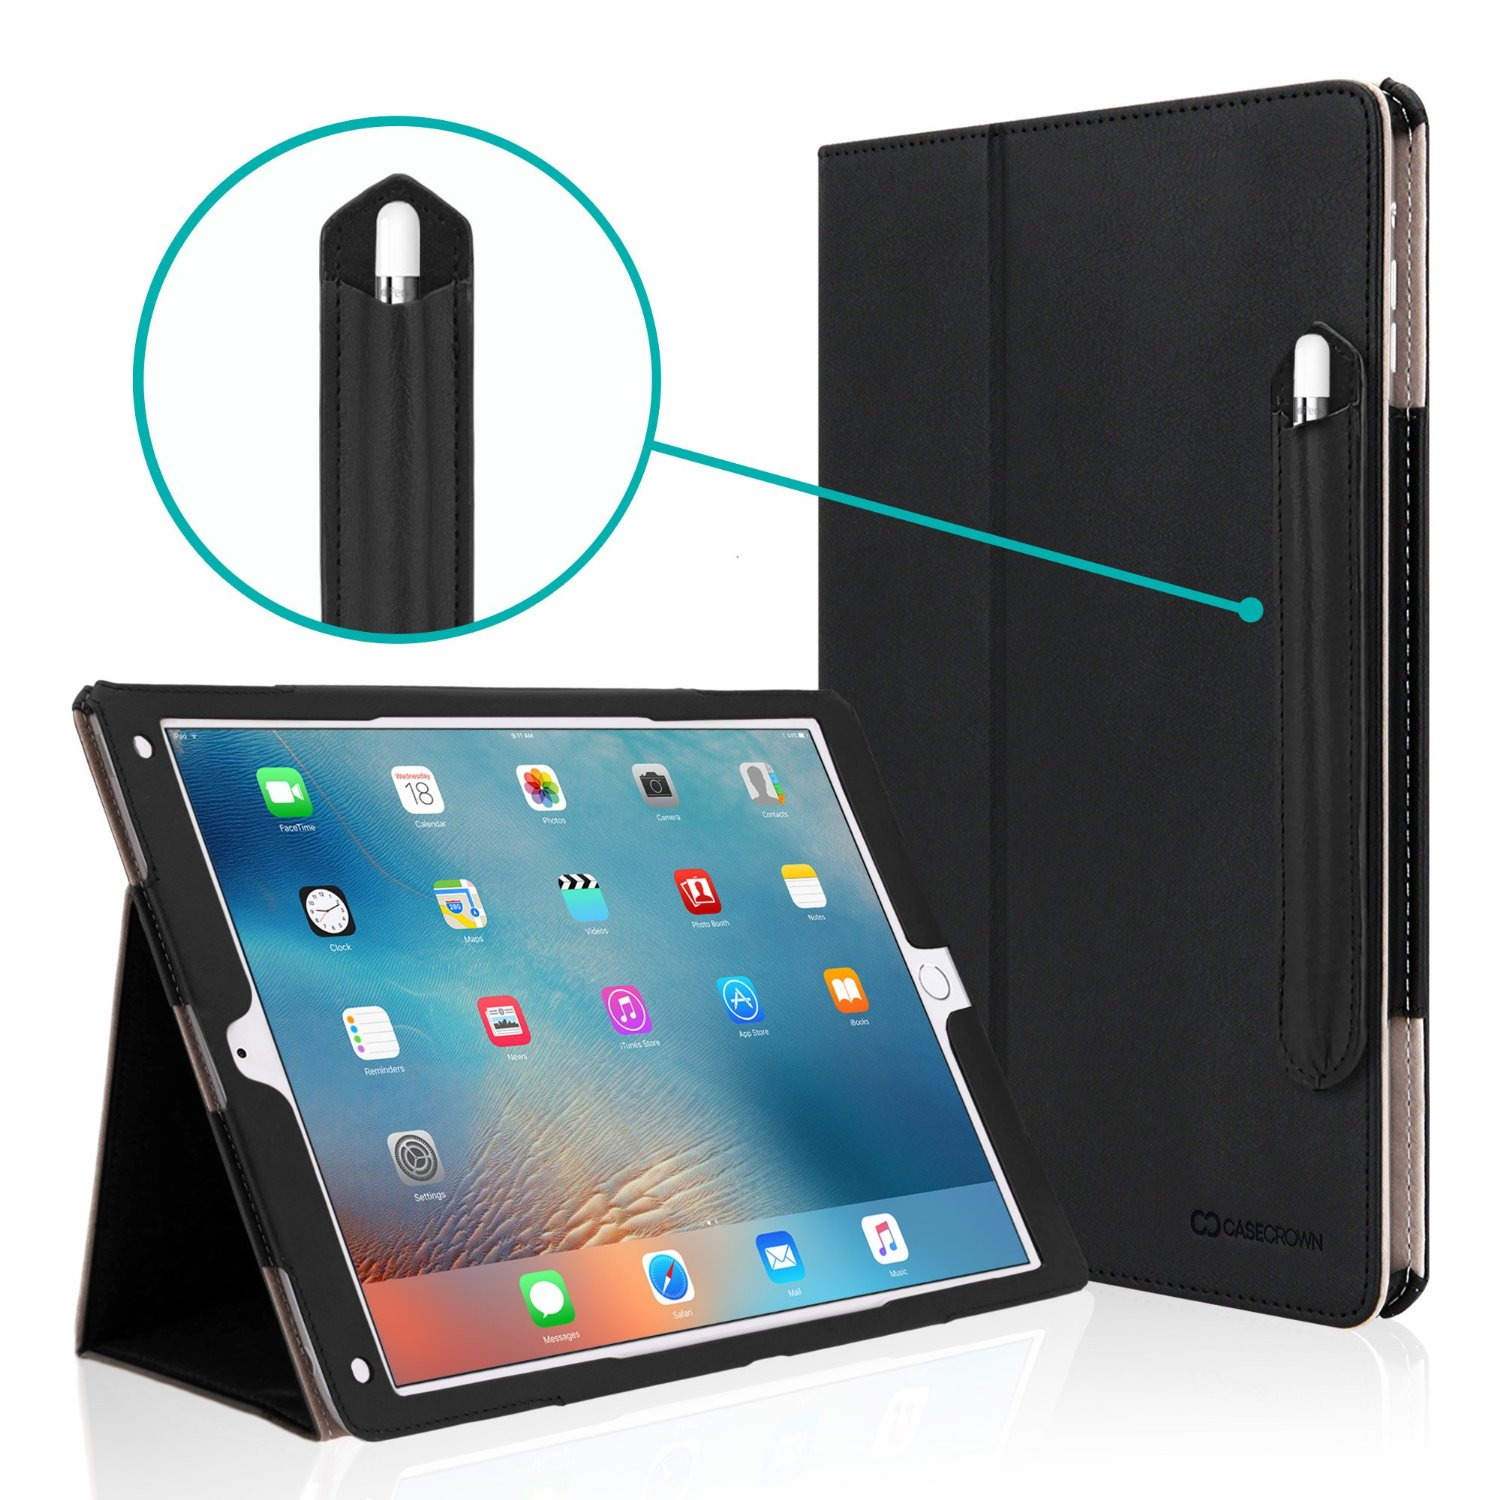 iPad Pro 12.9 Case, [Corner Protection] CaseCrown Bold Standby Pro (Black) w/ Apple Pencil Holder, Sleep / Wake, Hand Grip, & Multi-Angle Viewing Stand